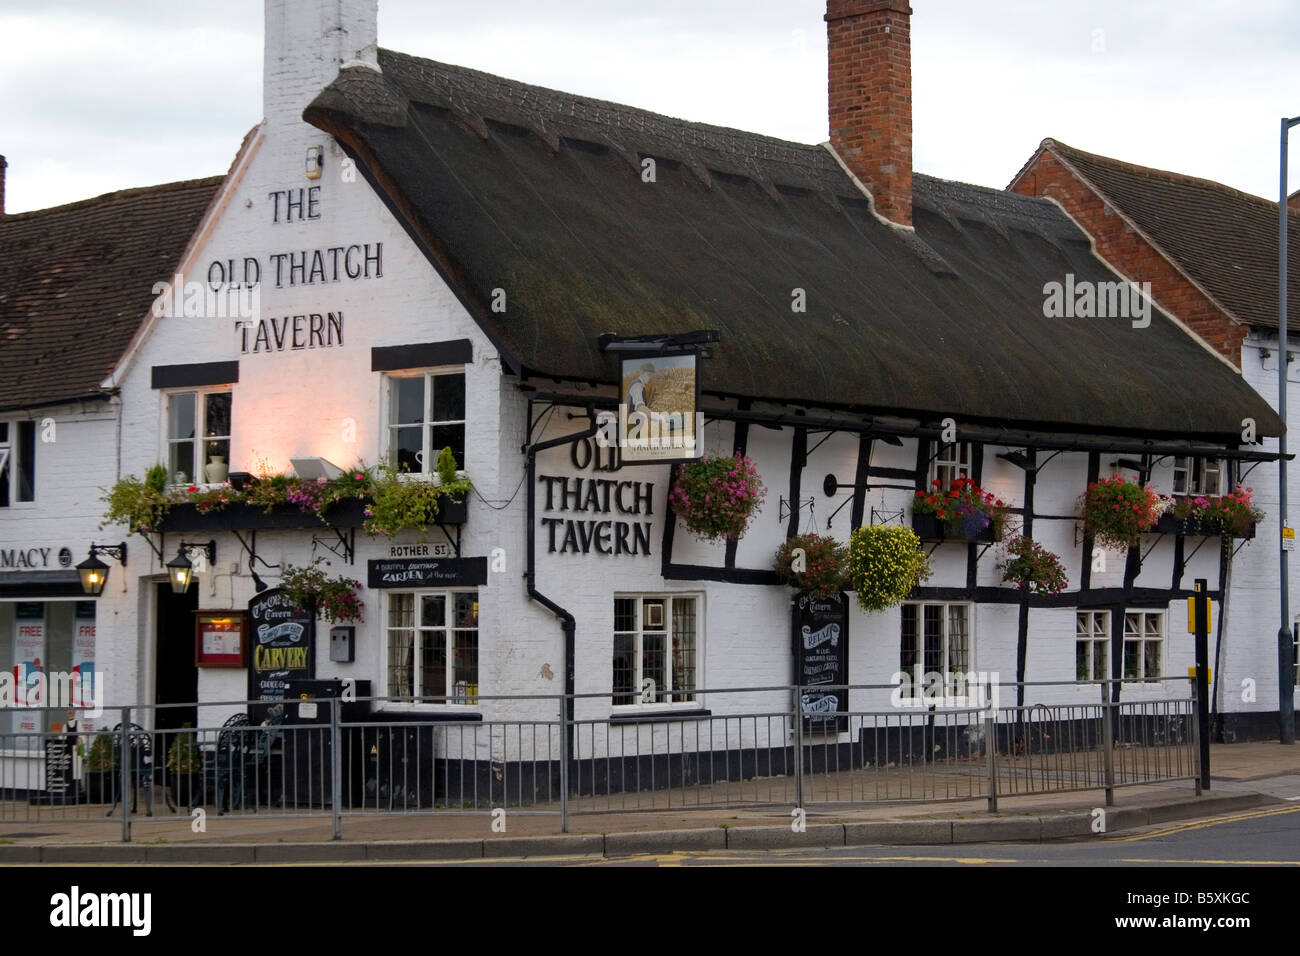 The Old Thatch Tavern in the market town of Stratford upon Avon Warwickshire England - Stock Image